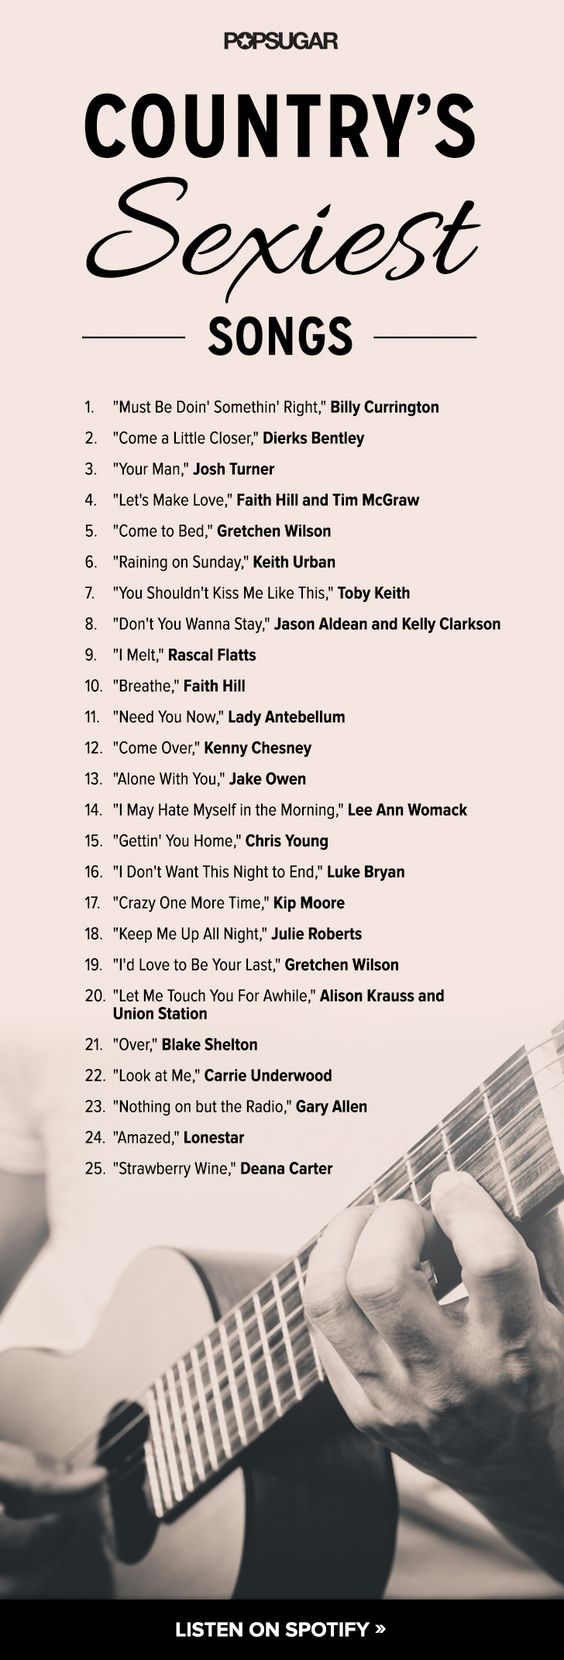 Here's your sexy country songs playlist! Billy Currington, Dierks Bentley, Josh Turner, Faith Hill, Tim McGraw, and more!